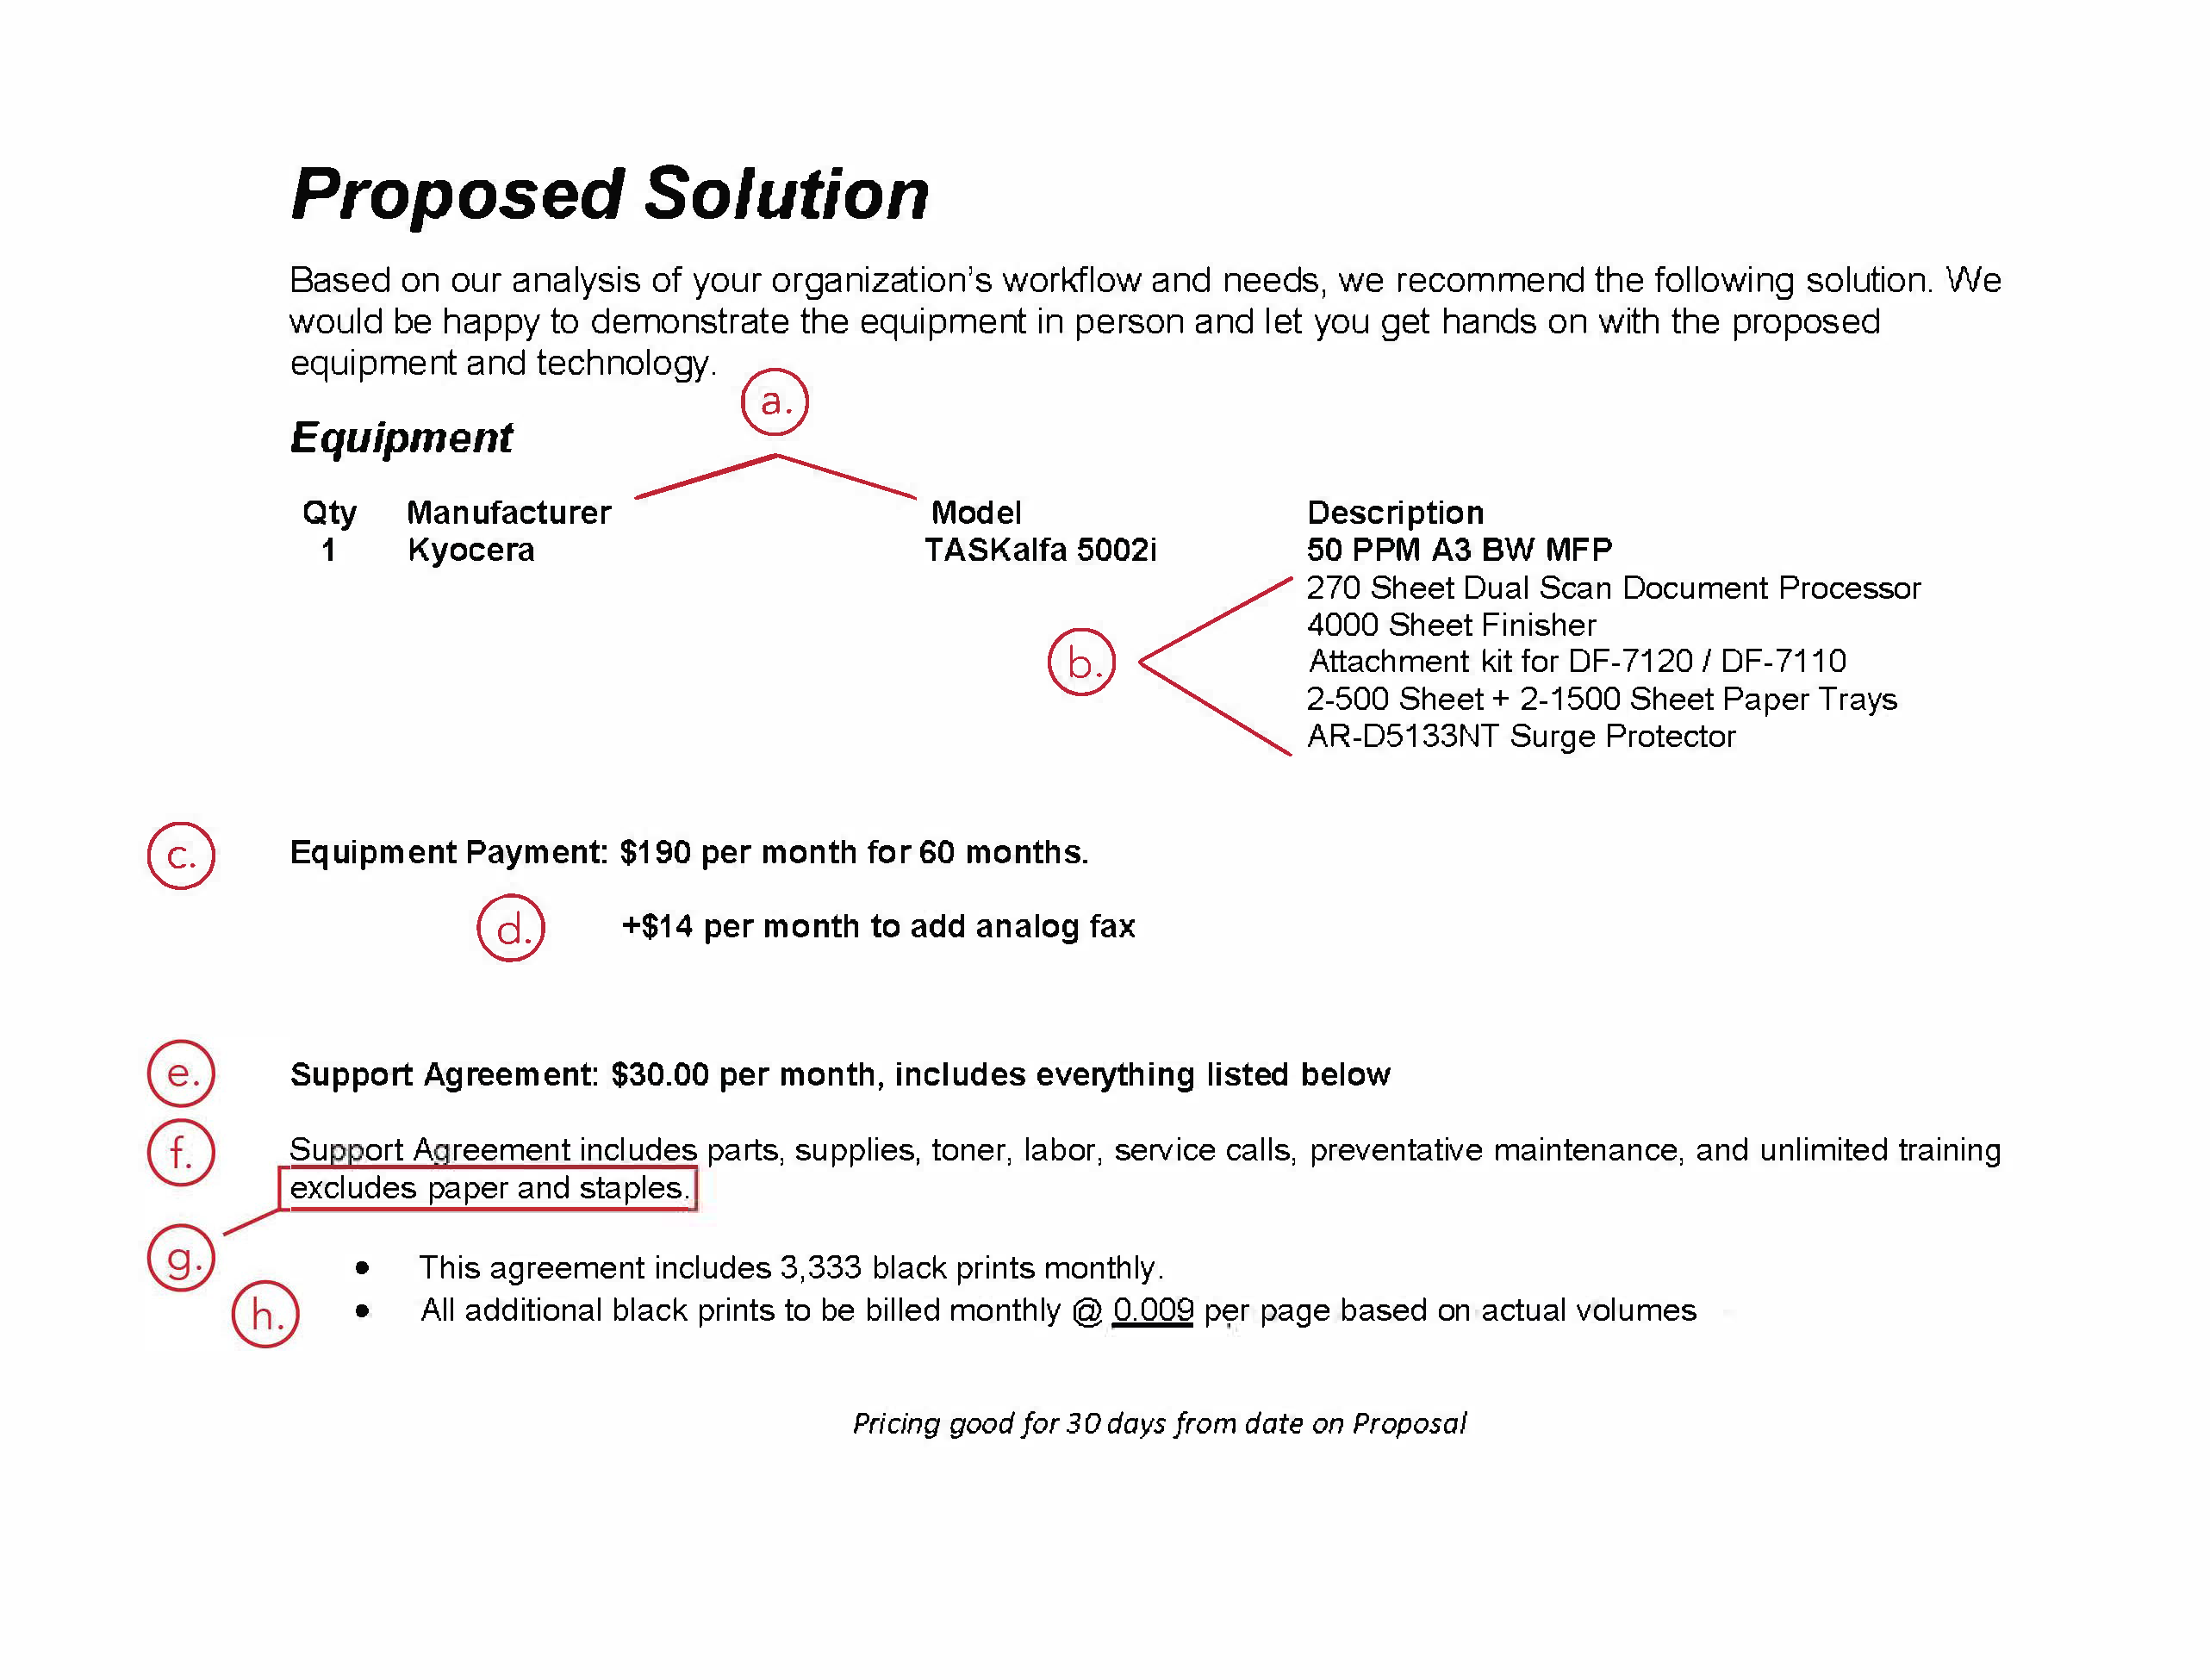 Proposal Example C: Proposed Solution Based on our analysis of your organization's workflow and needs, we recommend the following solution. We would be happy to demonstrate the equipment in person and let you get hands on with the proposed equipment and technology. Equipment Qty: 1, Manufacturer: Kyocera, Model: TASKalfa 502i, Description: 50 PPM A3 BW MFP 270 Sheet Dual Scan Document Processor 4000 Sheet Finisher Attachment kit for DF-7120 / DF-7110 2-500 Sheet + 2-1500 Sheet Paper Trays AR-D5133NT Surge Protector Equipment Payment: $190 per month for 60 months. +$14 per month to add analog fax Support Agreement: $30.00 per month, includes everything listed below Support Agreement includes parts, supplies, toner, labor, service calls, preventative maintenance, and unlimited training excludes paper and staples. This agreement includes 3,333 black prints monthly. All additional black prints to be billed monthly @ 0.00900 per page based on actual volumes.